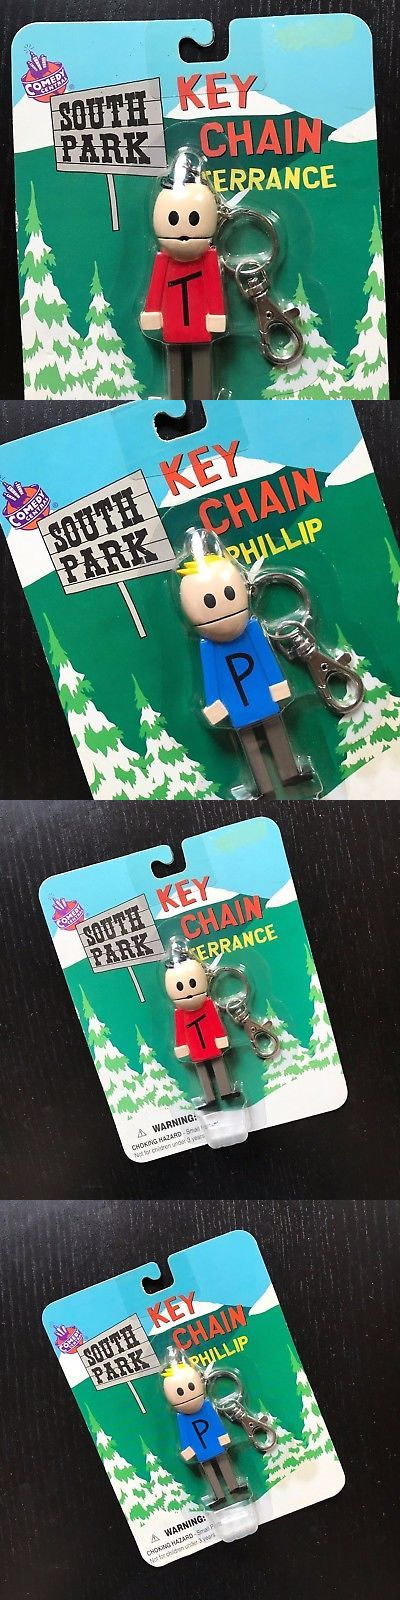 South Park 20918: South Park Keychain 1998 New Unopened Terrance And Phillip Comedy Central Nib Rare -> BUY IT NOW ONLY: $59.99 on eBay!